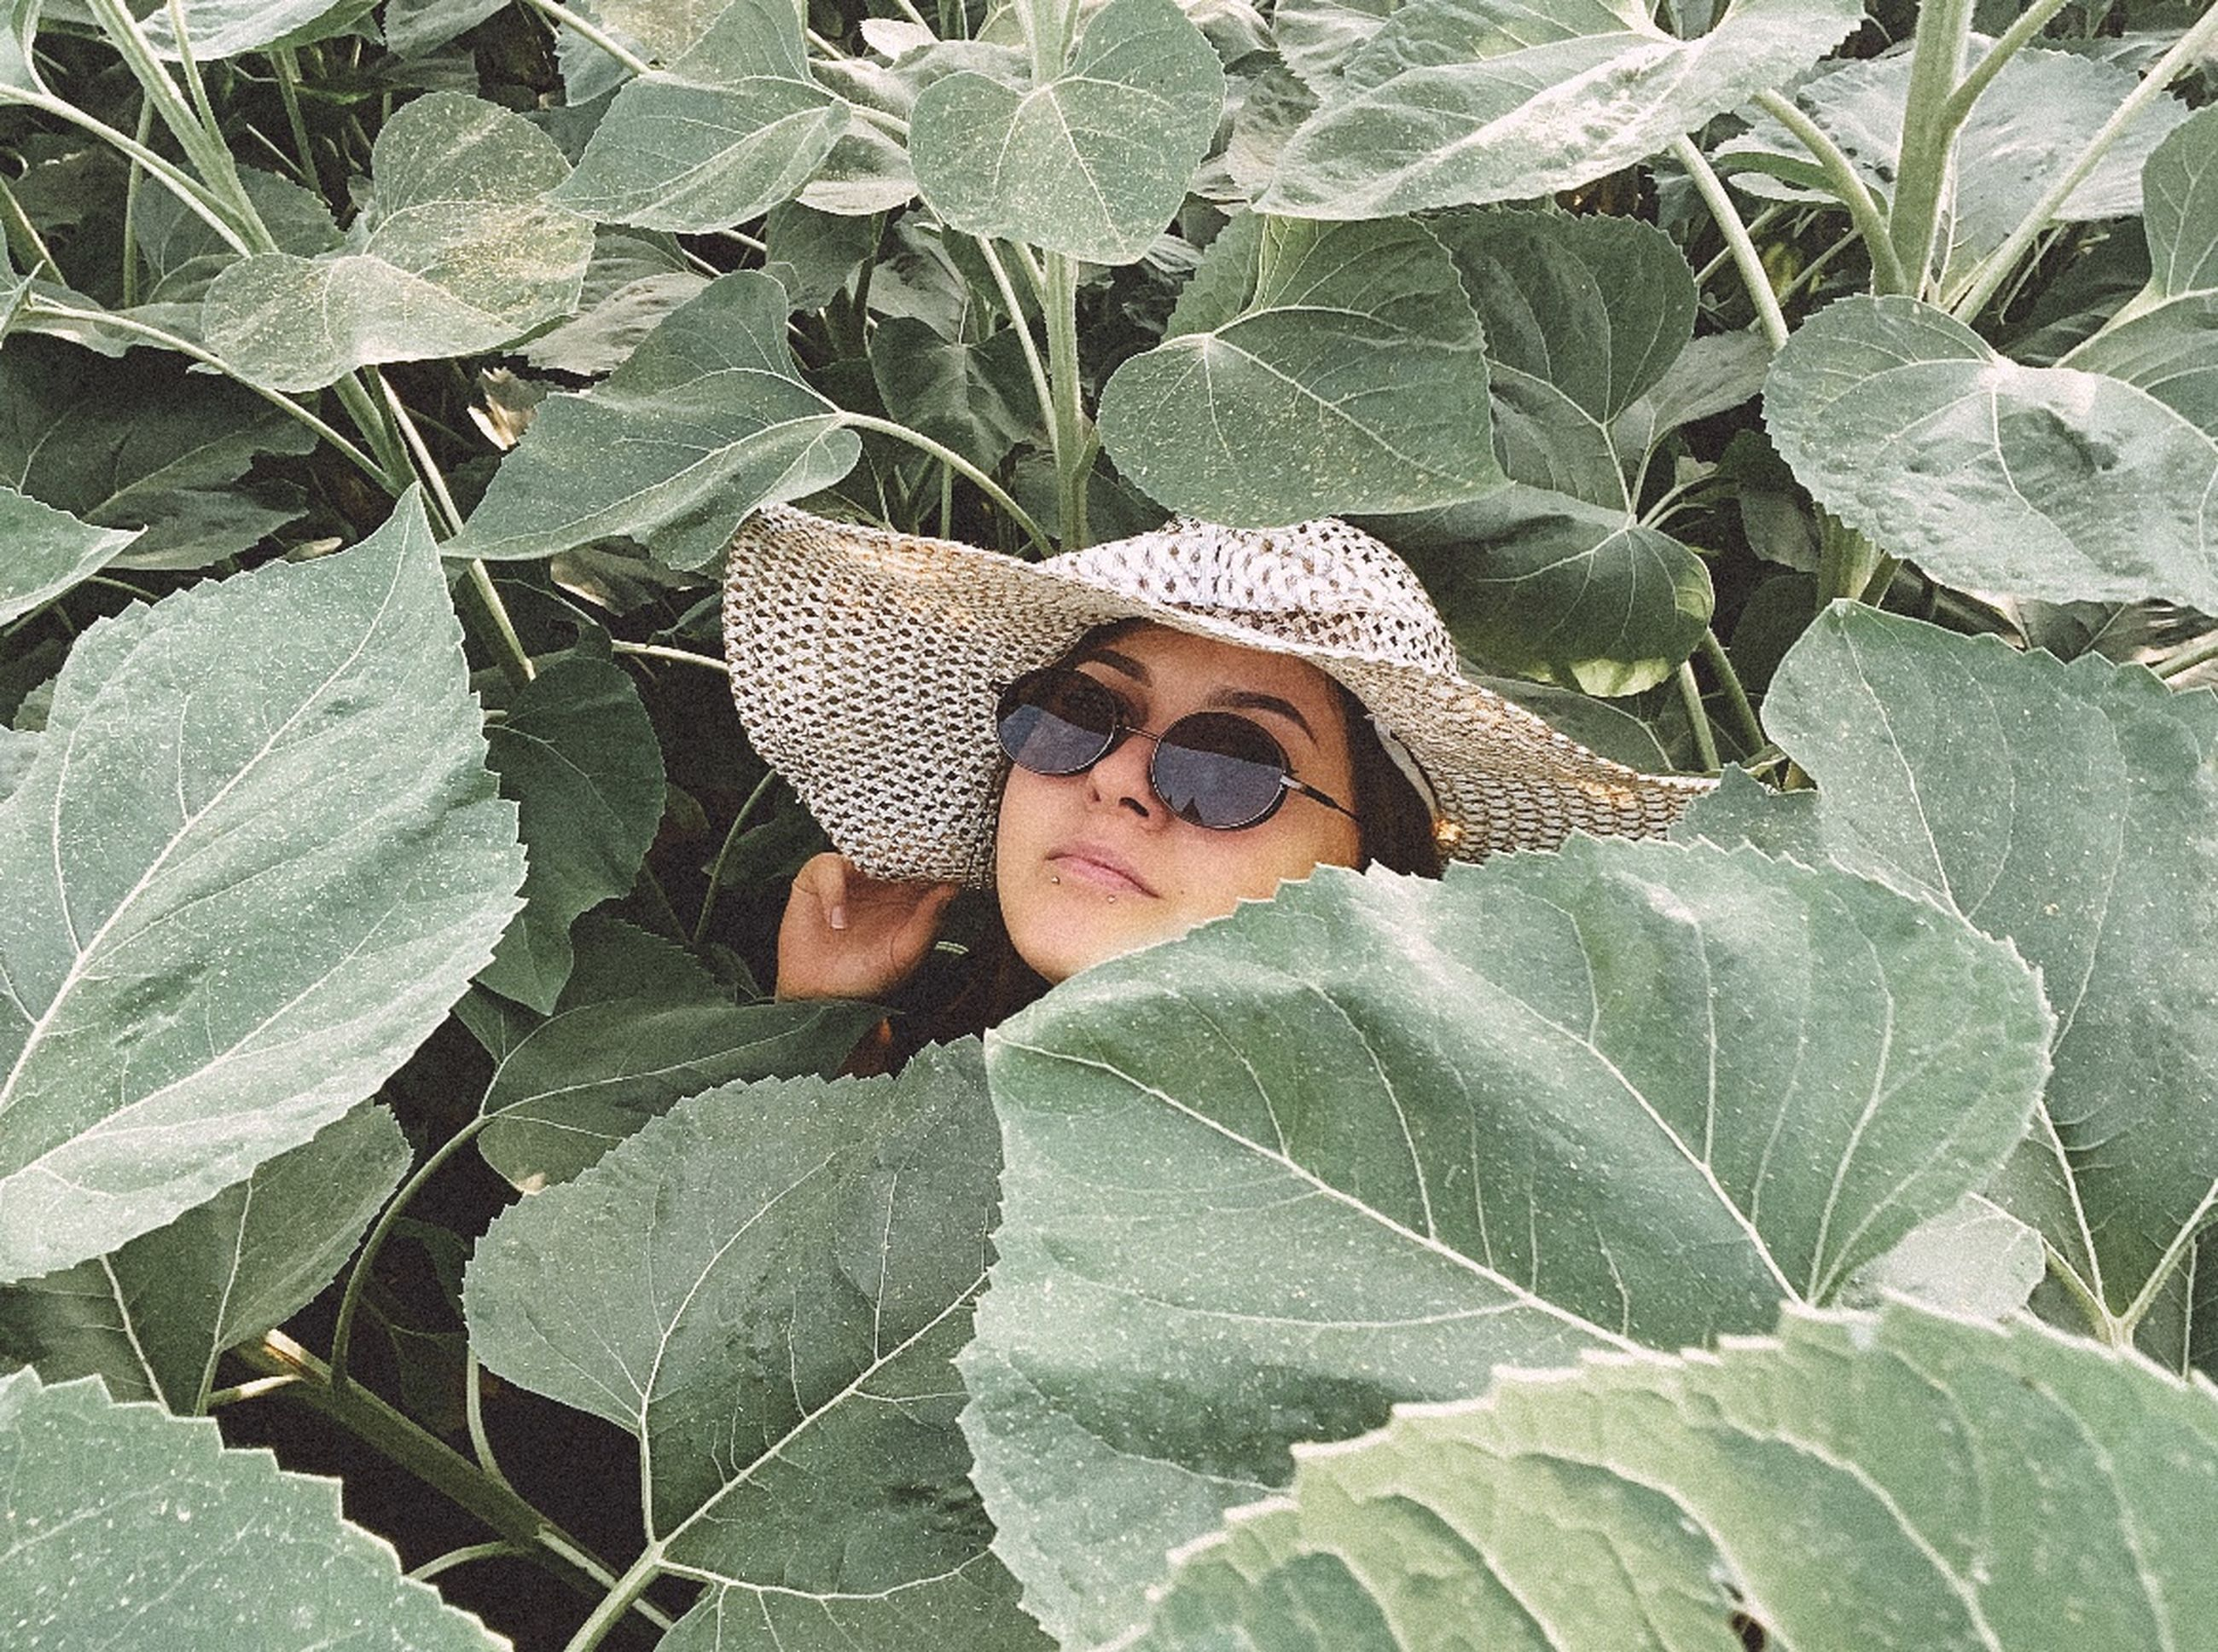 leaf, plant part, one person, nature, hat, plant, flower, portrait, green, sun hat, growth, adult, day, glasses, outdoors, cowboy hat, sunglasses, women, lifestyles, leisure activity, high angle view, young adult, front view, headshot, clothing, looking at camera, person, straw hat, beauty in nature, land, fashion accessory, produce